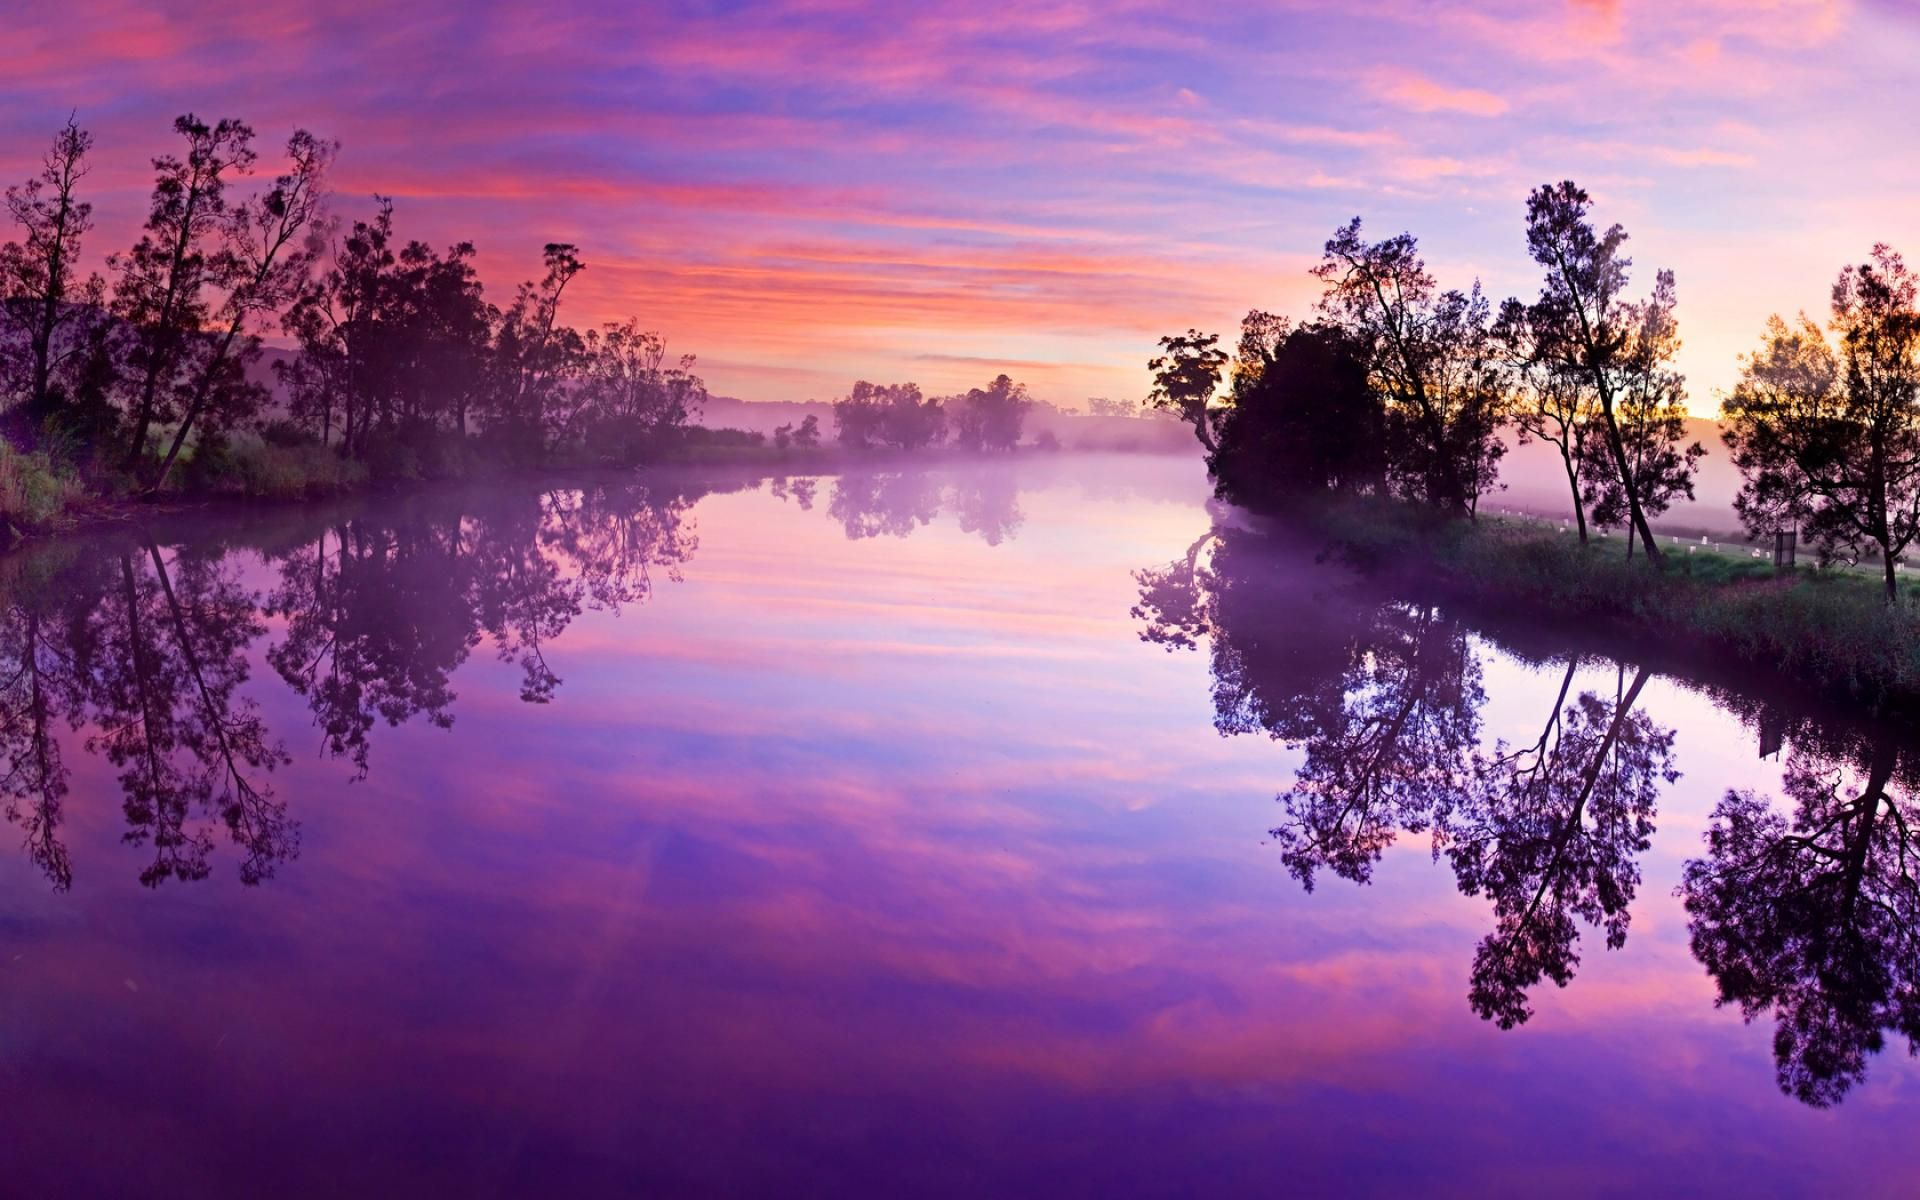 Sunrise purple wallpaper background sunset scene desktop | Nature/ backgrounds | Pinterest ...